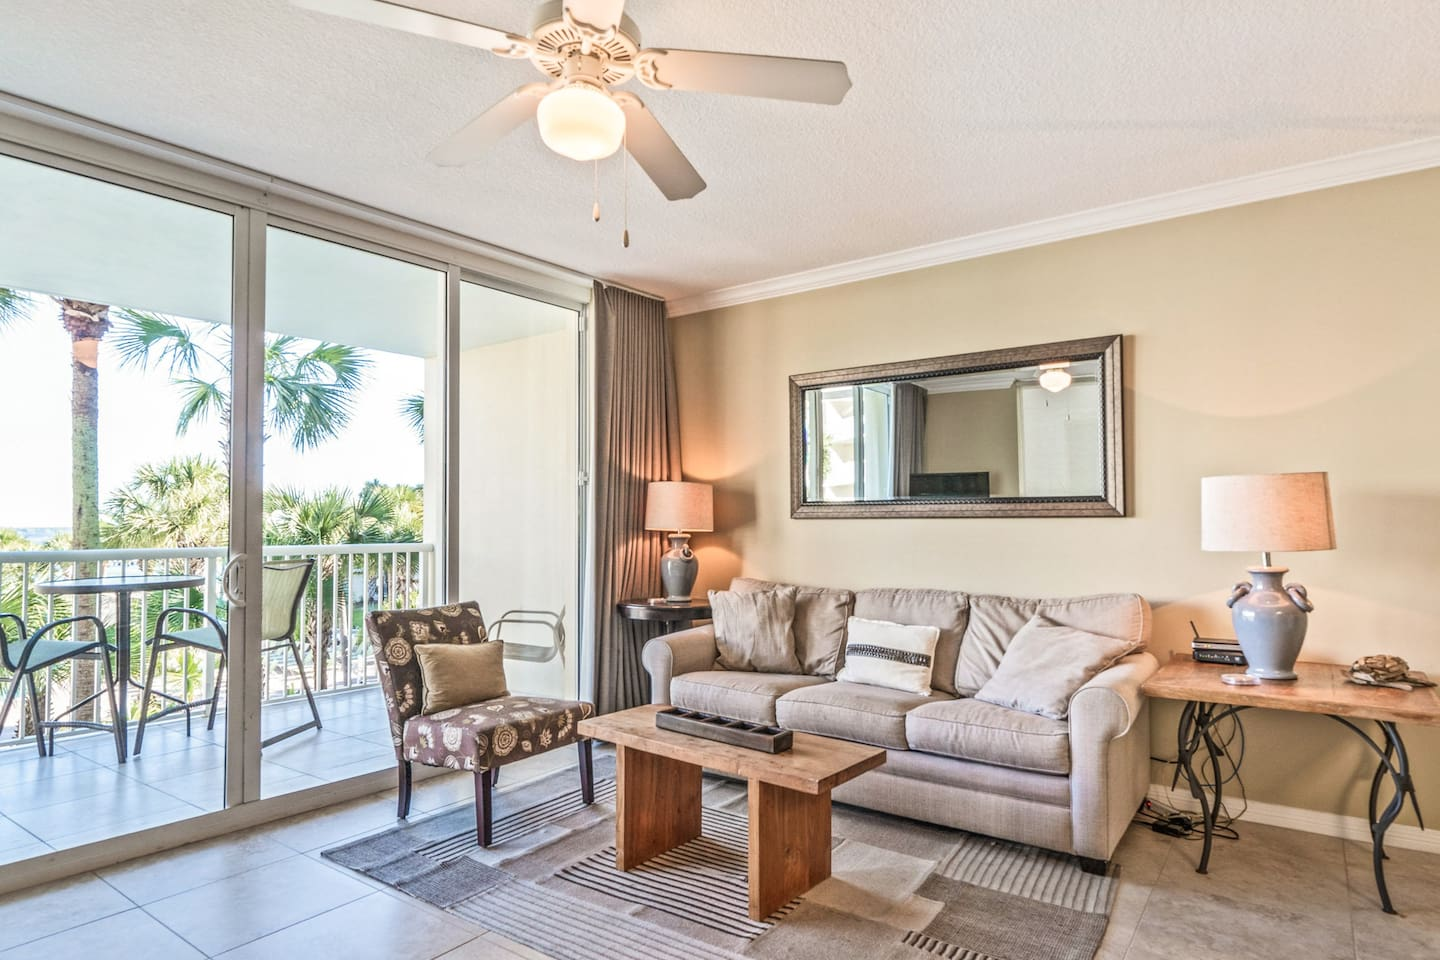 Welcome to Destin! Your rental is professionally managed by TurnKey Vacation Rentals.